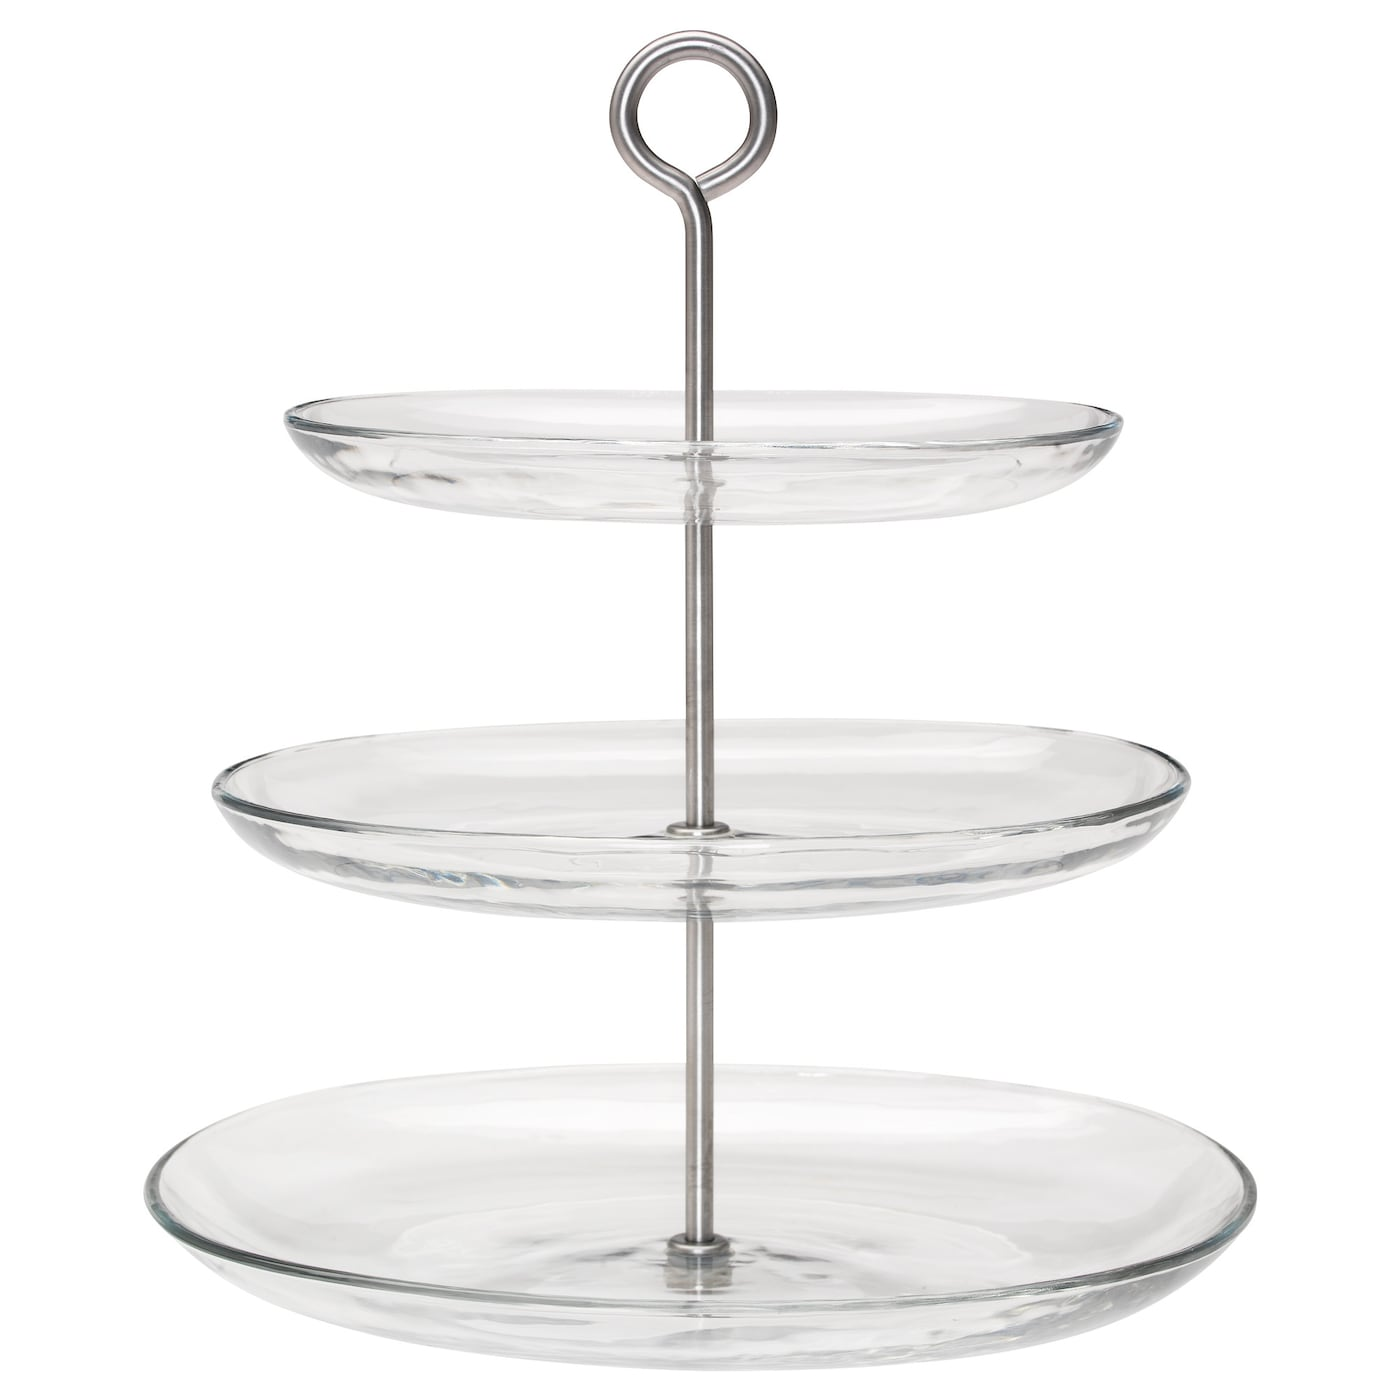 IKEA KVITTERA serving stand, three tiers